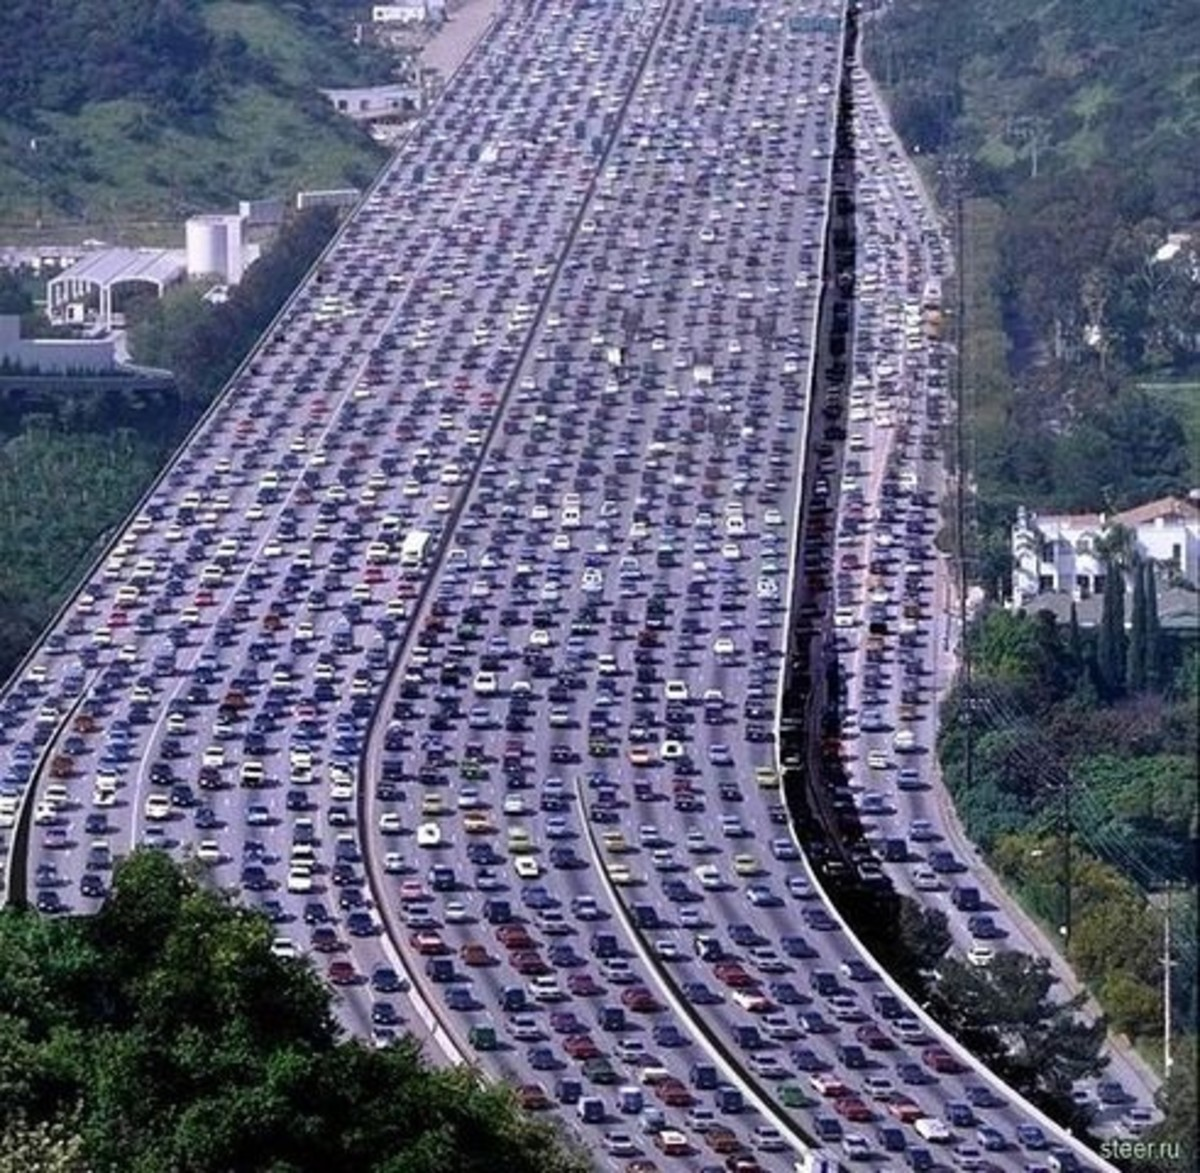 The longest traffic jam in the world recorded in China. Its length is 260 kilometers